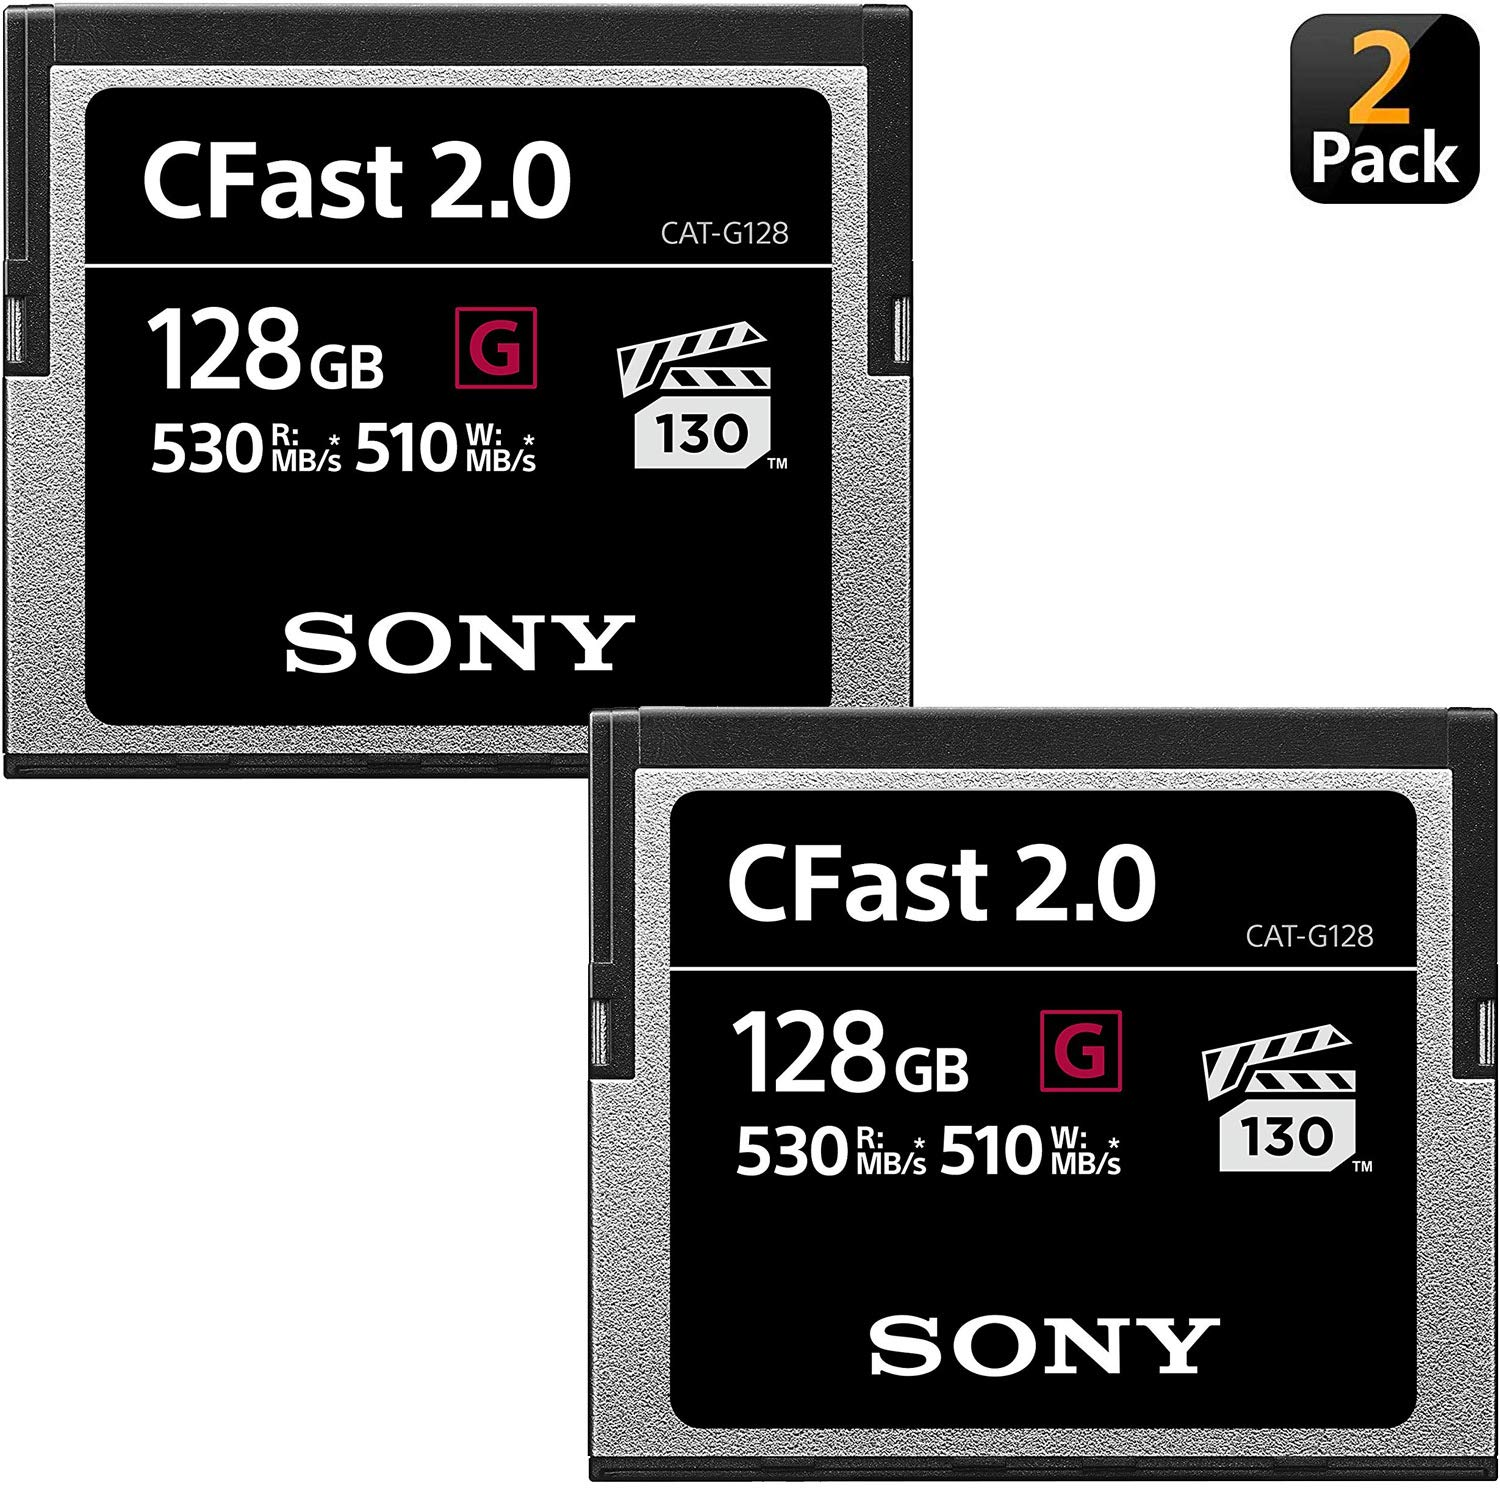 Sony CAT-G128 128GB High Performance CFast G Series 2.0 Memory Card (2-Pack) by Sony